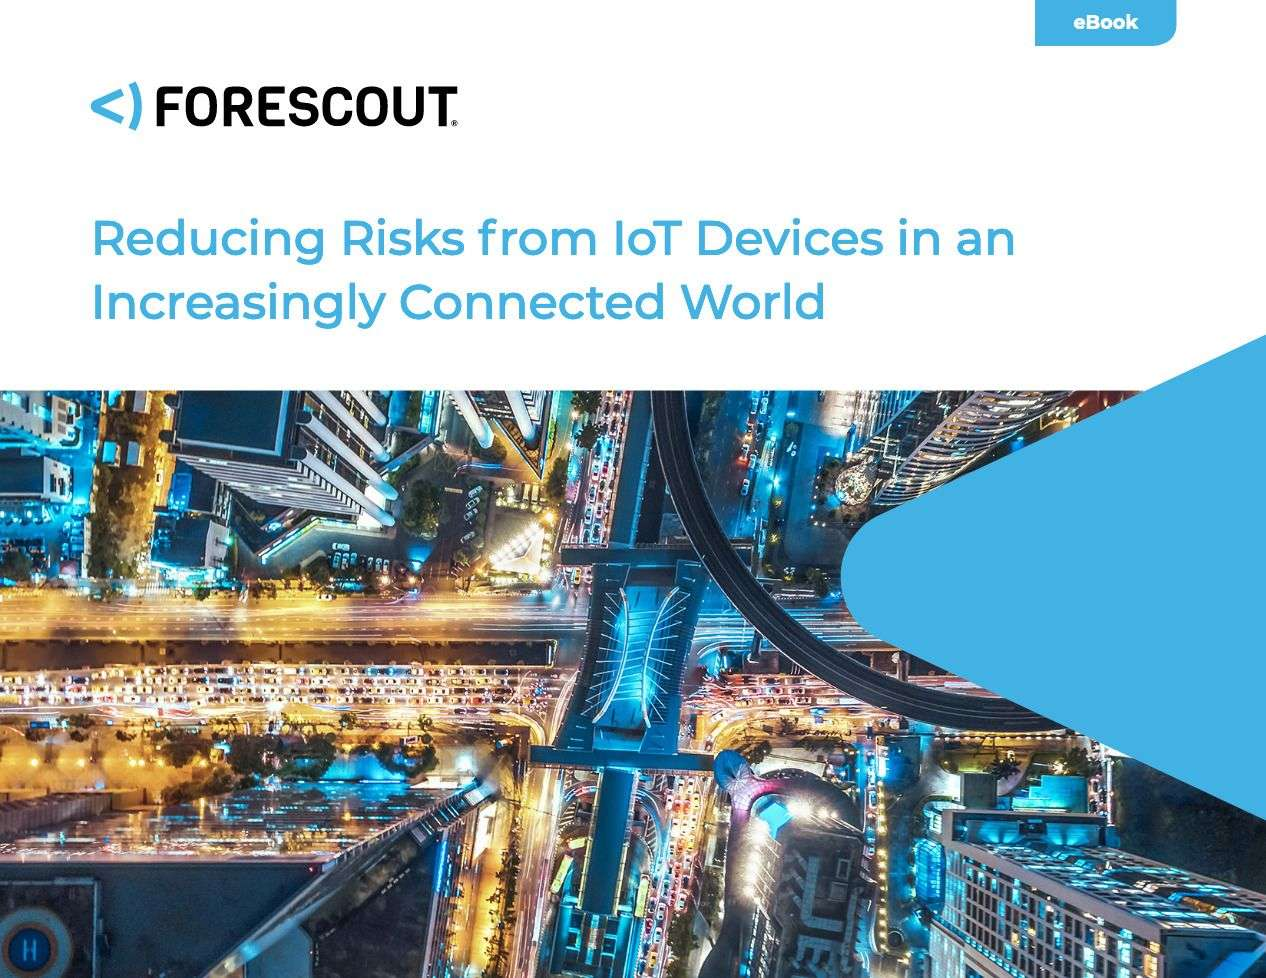 ForescoutOT eBook Reducing Risks from IoT Devices - Reducing Risks of IoT Devices in an Increasingly Connected World